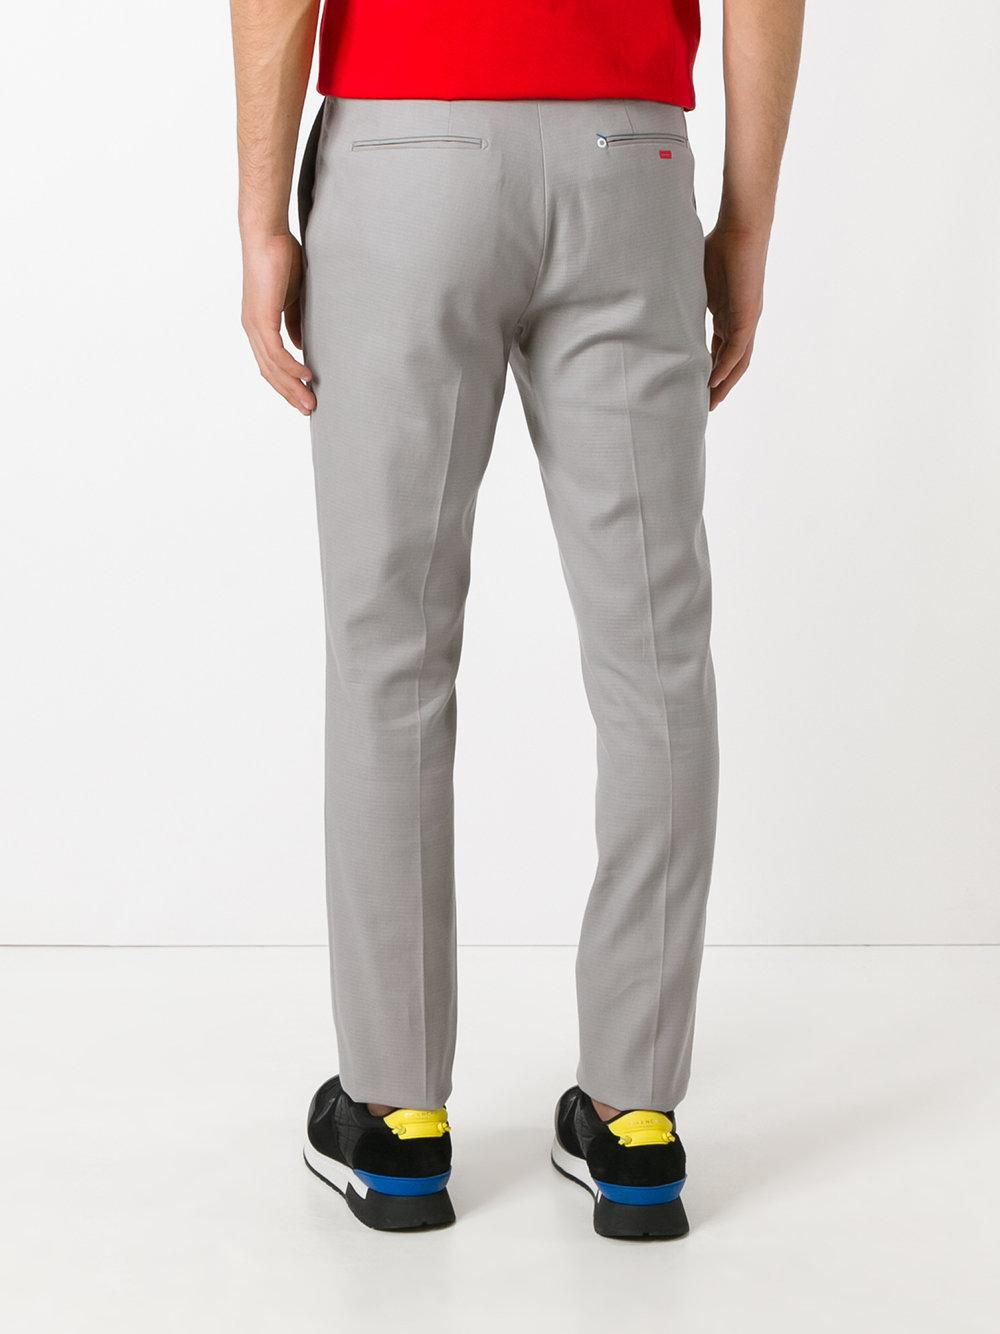 Fendi Cotton Tailored Trousers in Grey (Grey) for Men